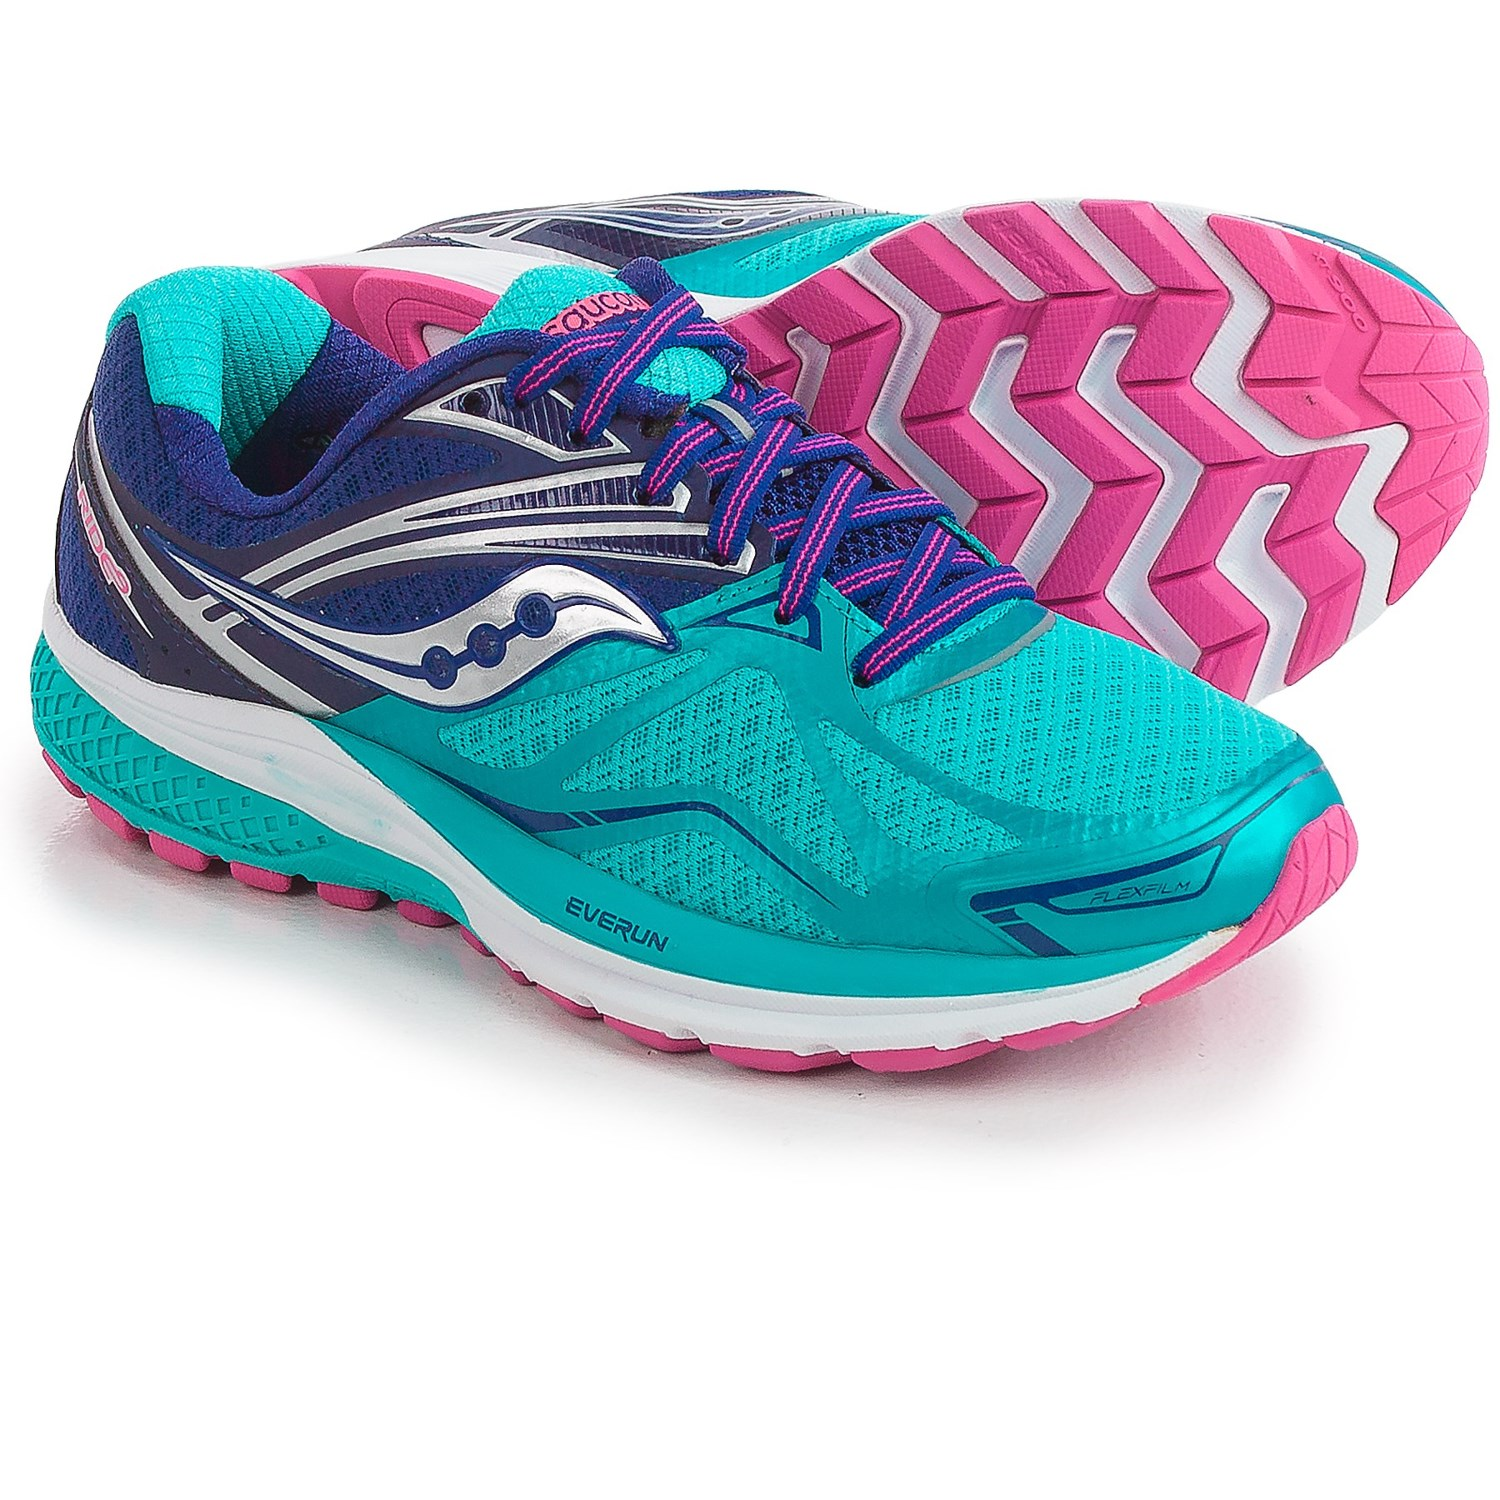 saucony running shoes saucony ride 9 running shoes (for women) in navy/blue/pink OBRDFVG